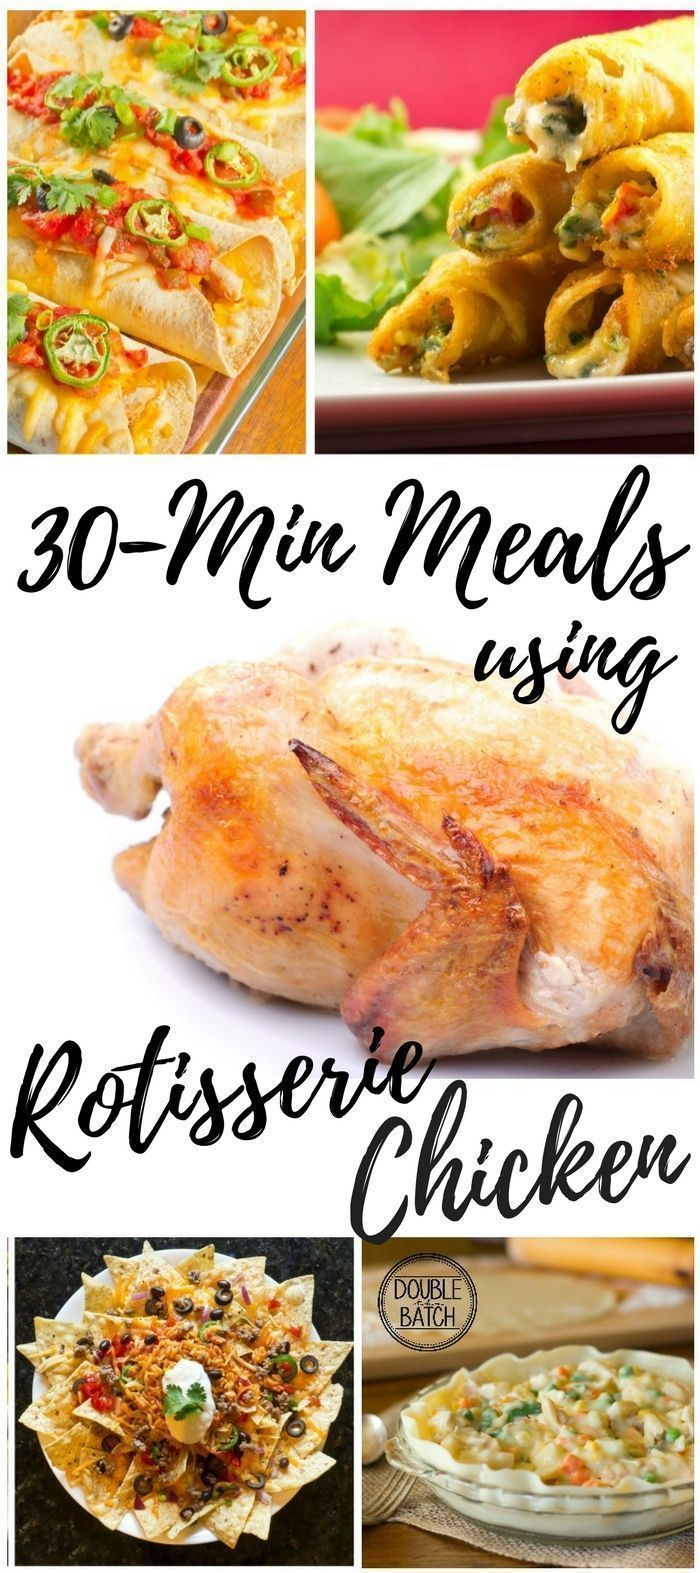 Rotissoire Chicken Recipes: 30-min meals using leftover chicken images